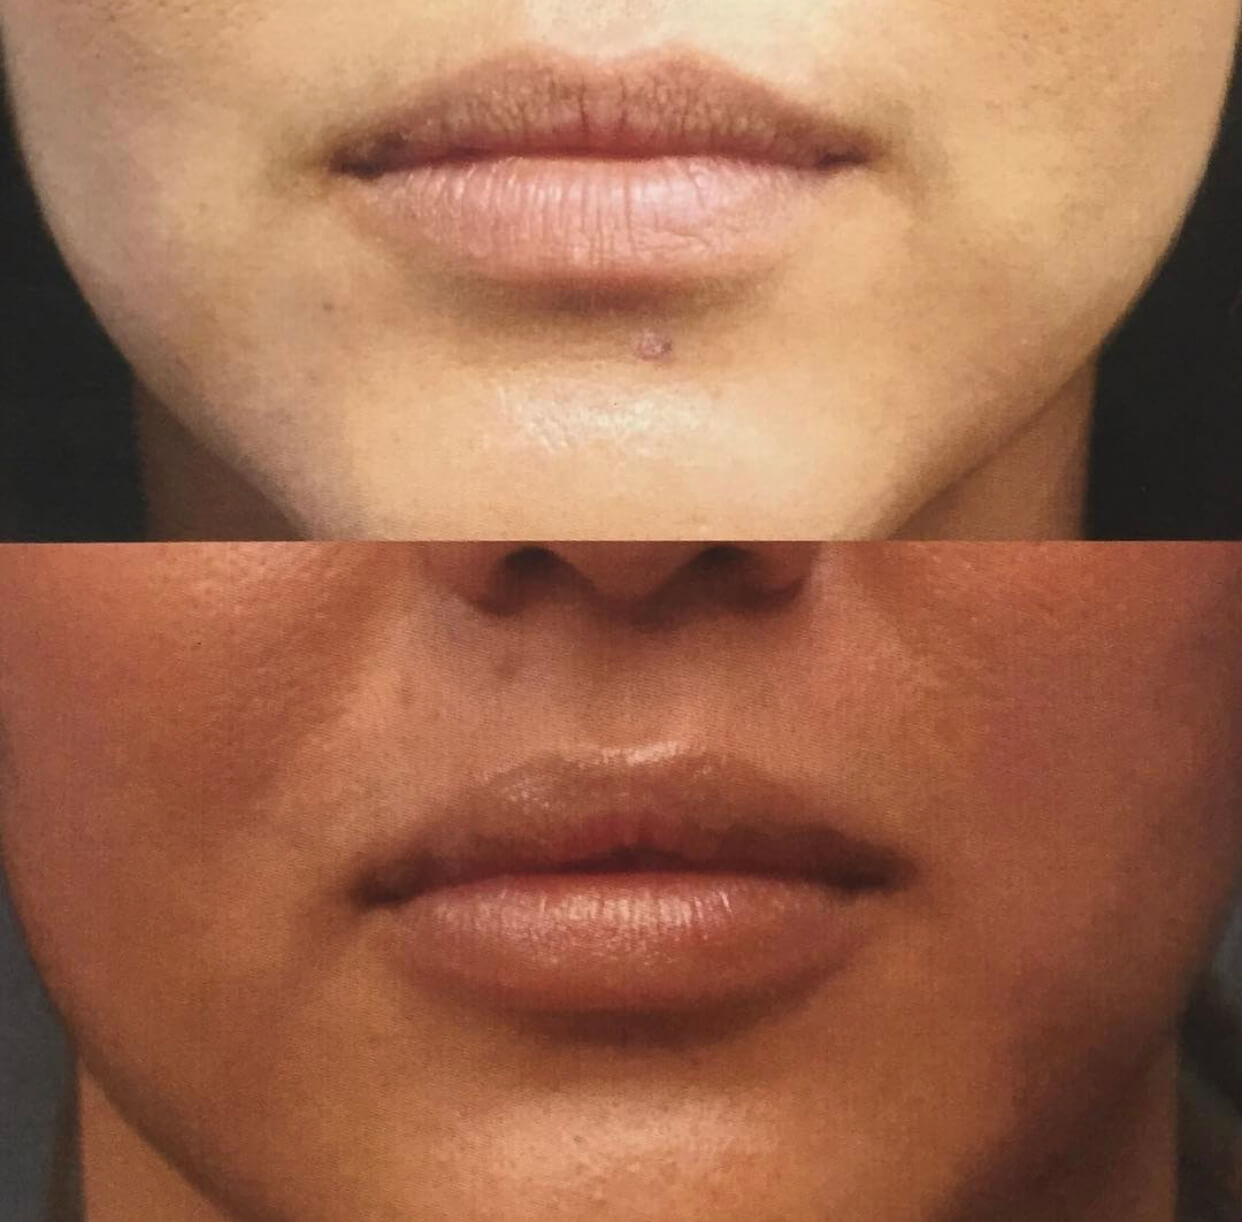 Before and after one syringe of Juvederm UP to increase volume by Nurse Dallas Sellars